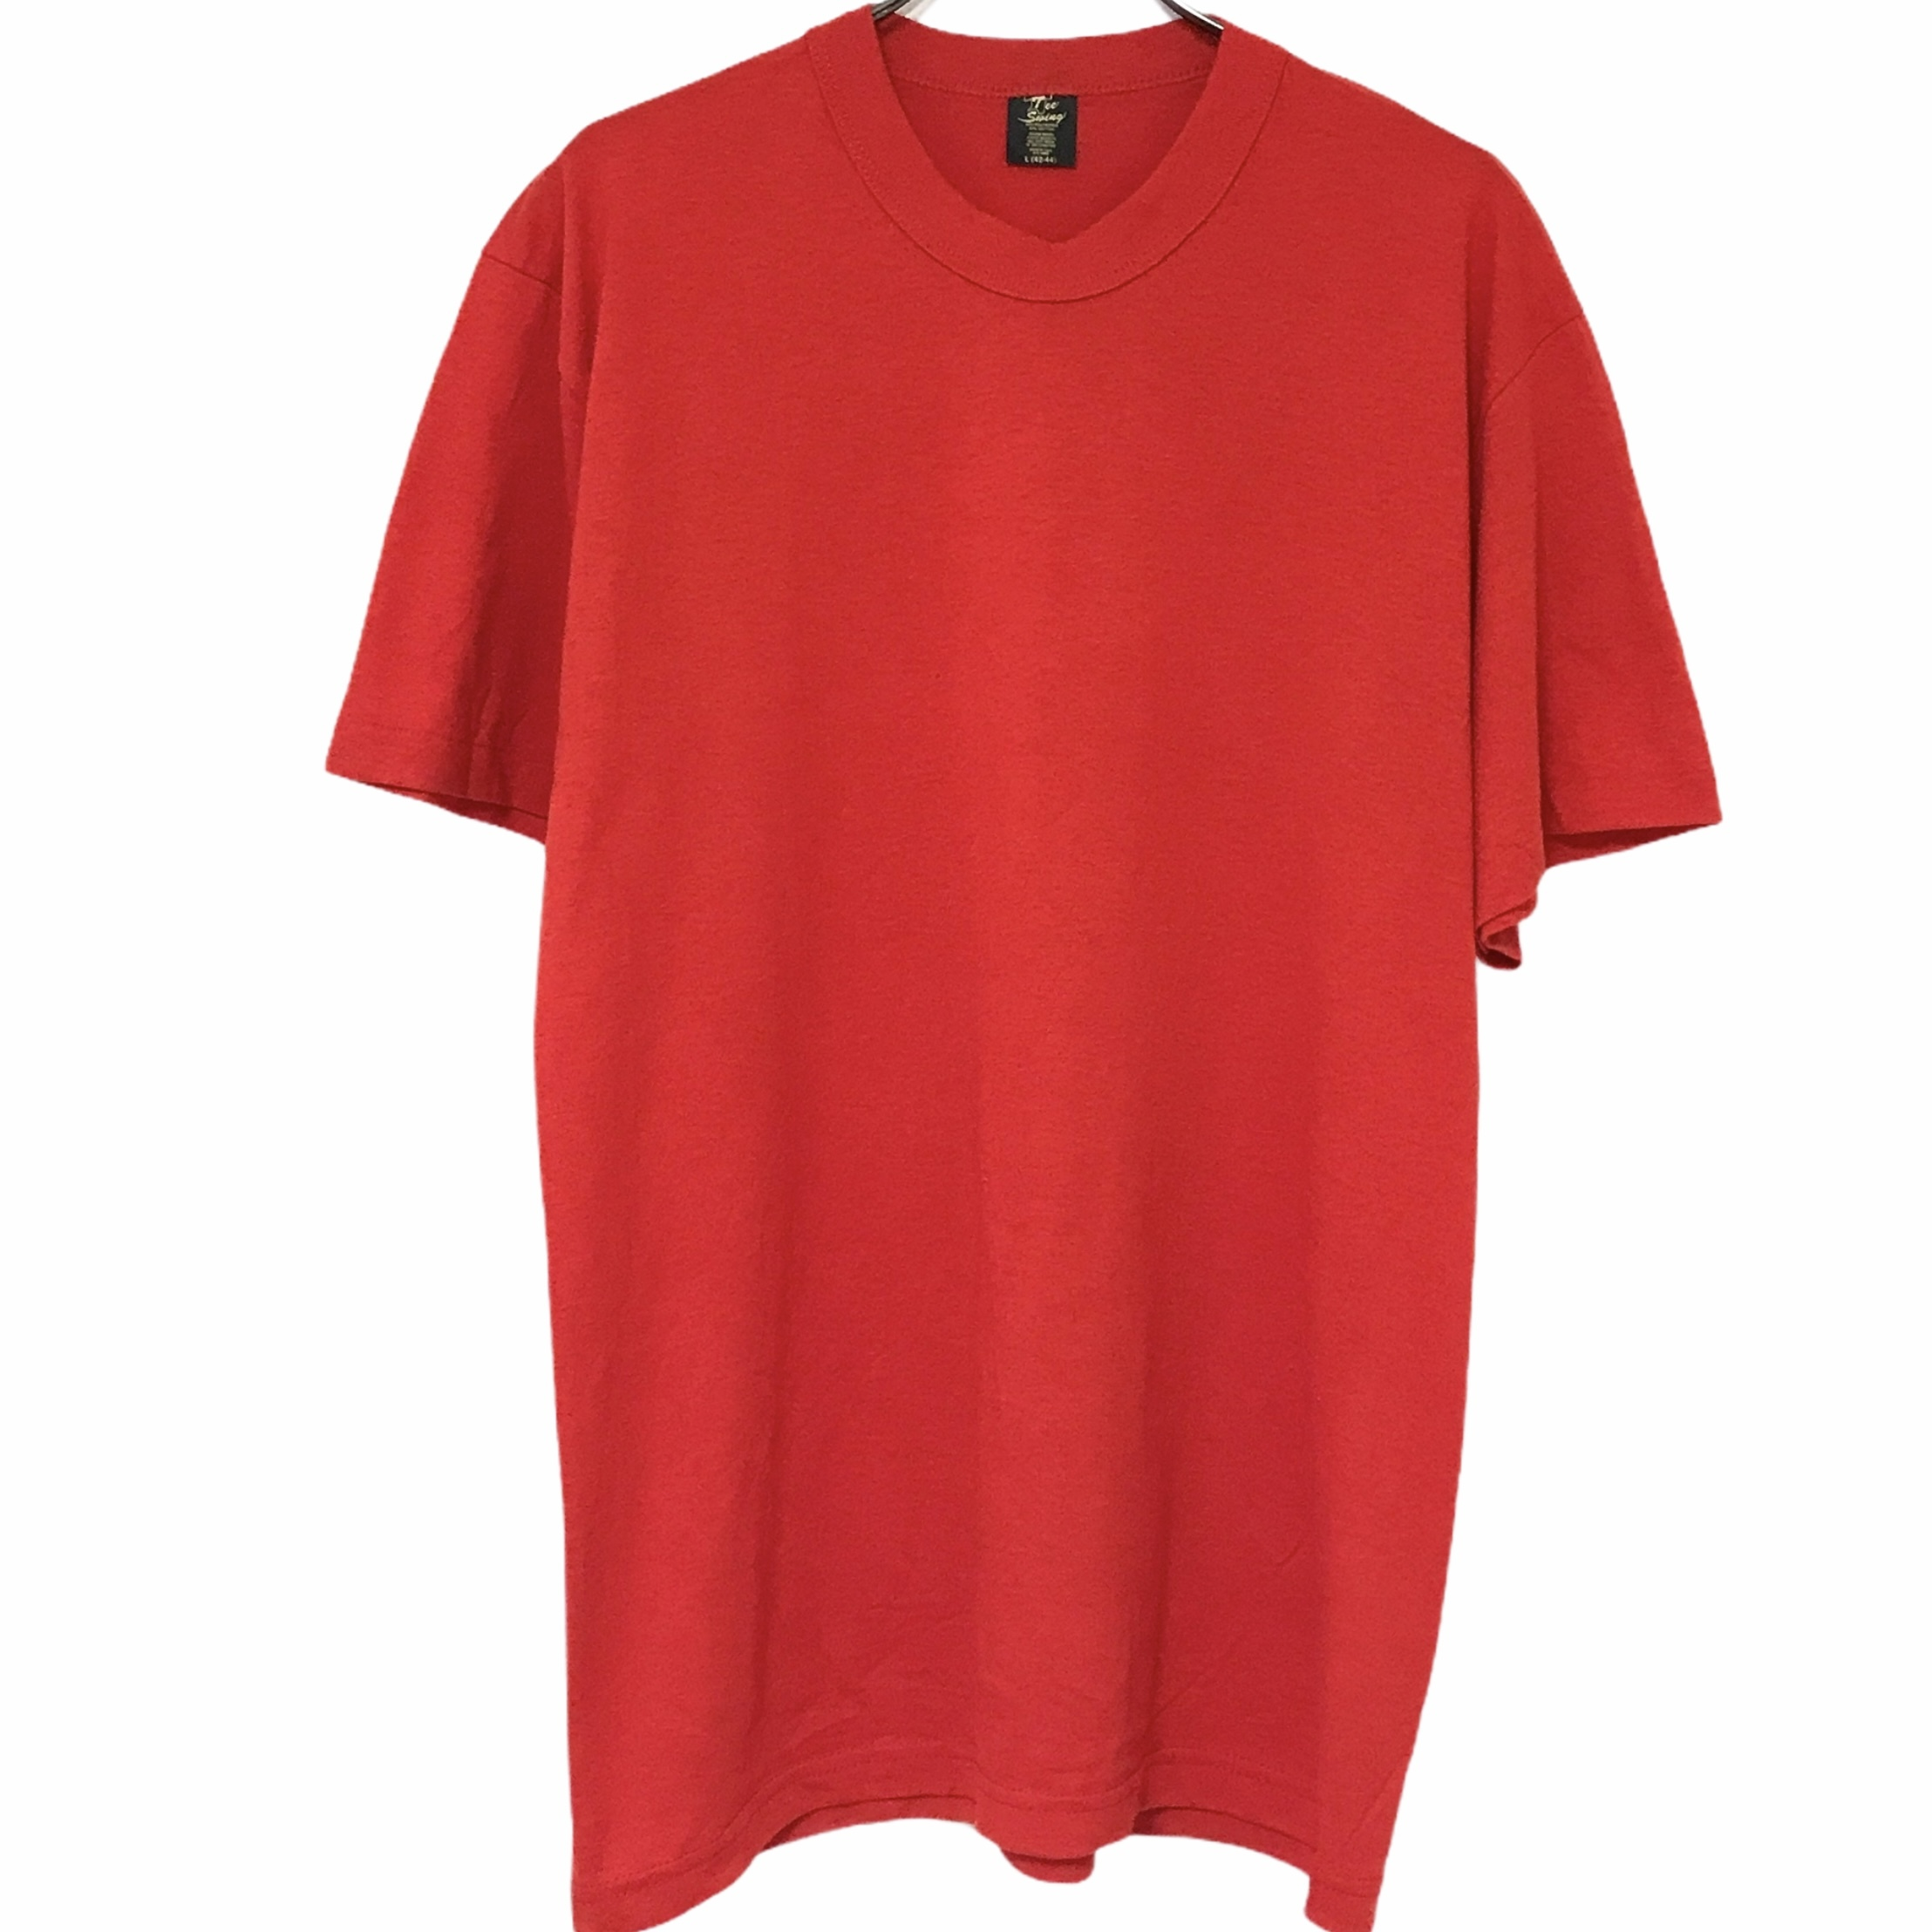 Dead Stock! 80's Tee Swing T-shirt made in USA Red